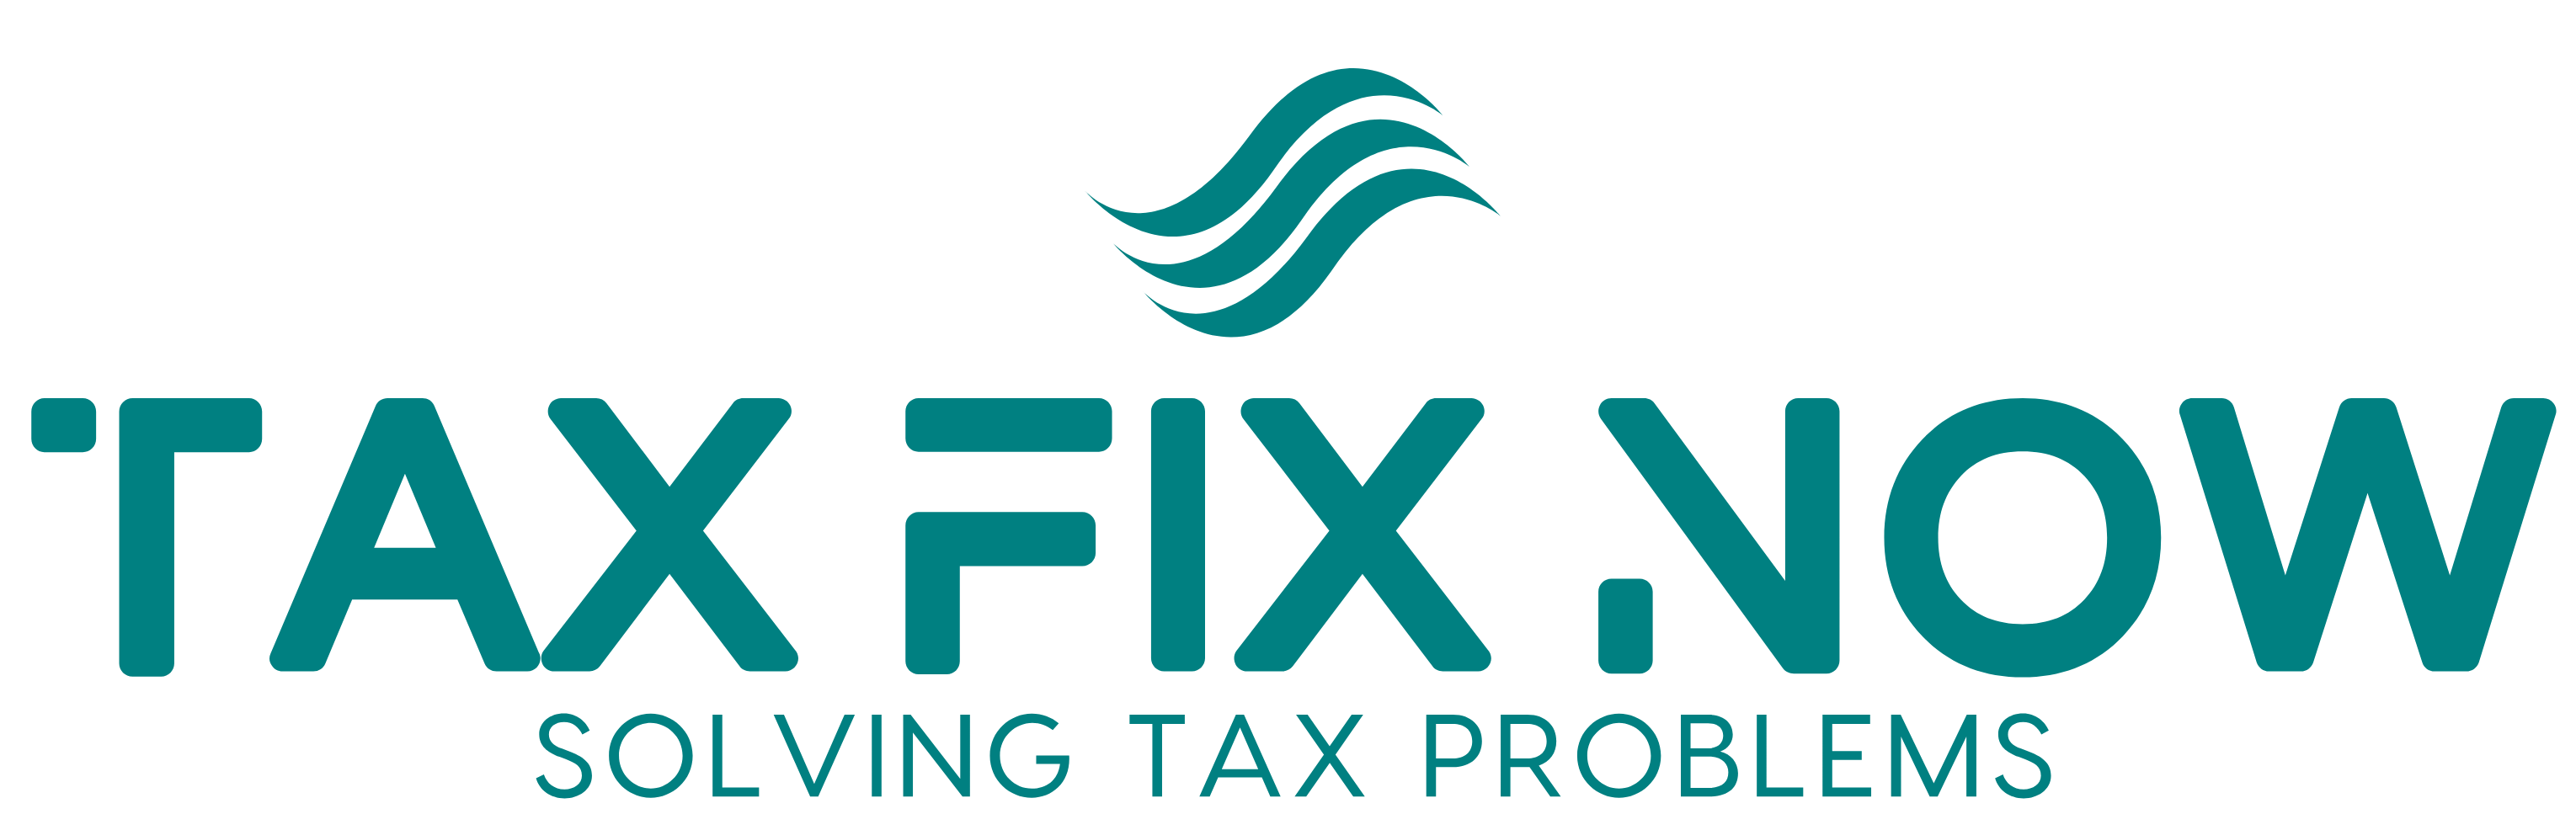 Highland Village, TX Bookkeeping Firm | Guides Page | Tax Fix Now